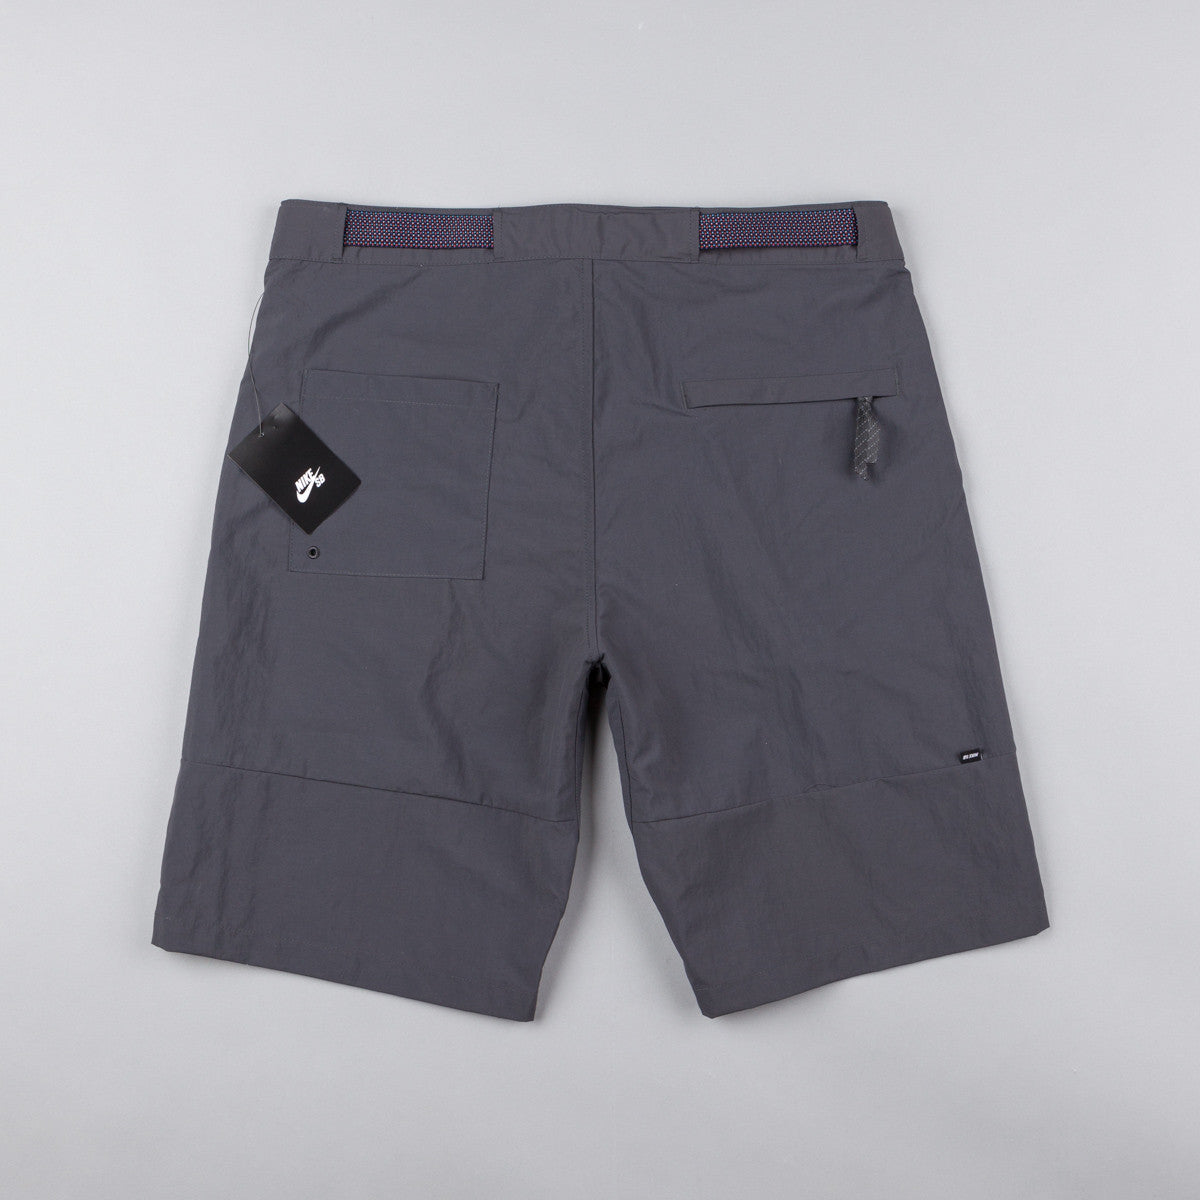 Nike SB Everett Woven Shorts - Anthracite